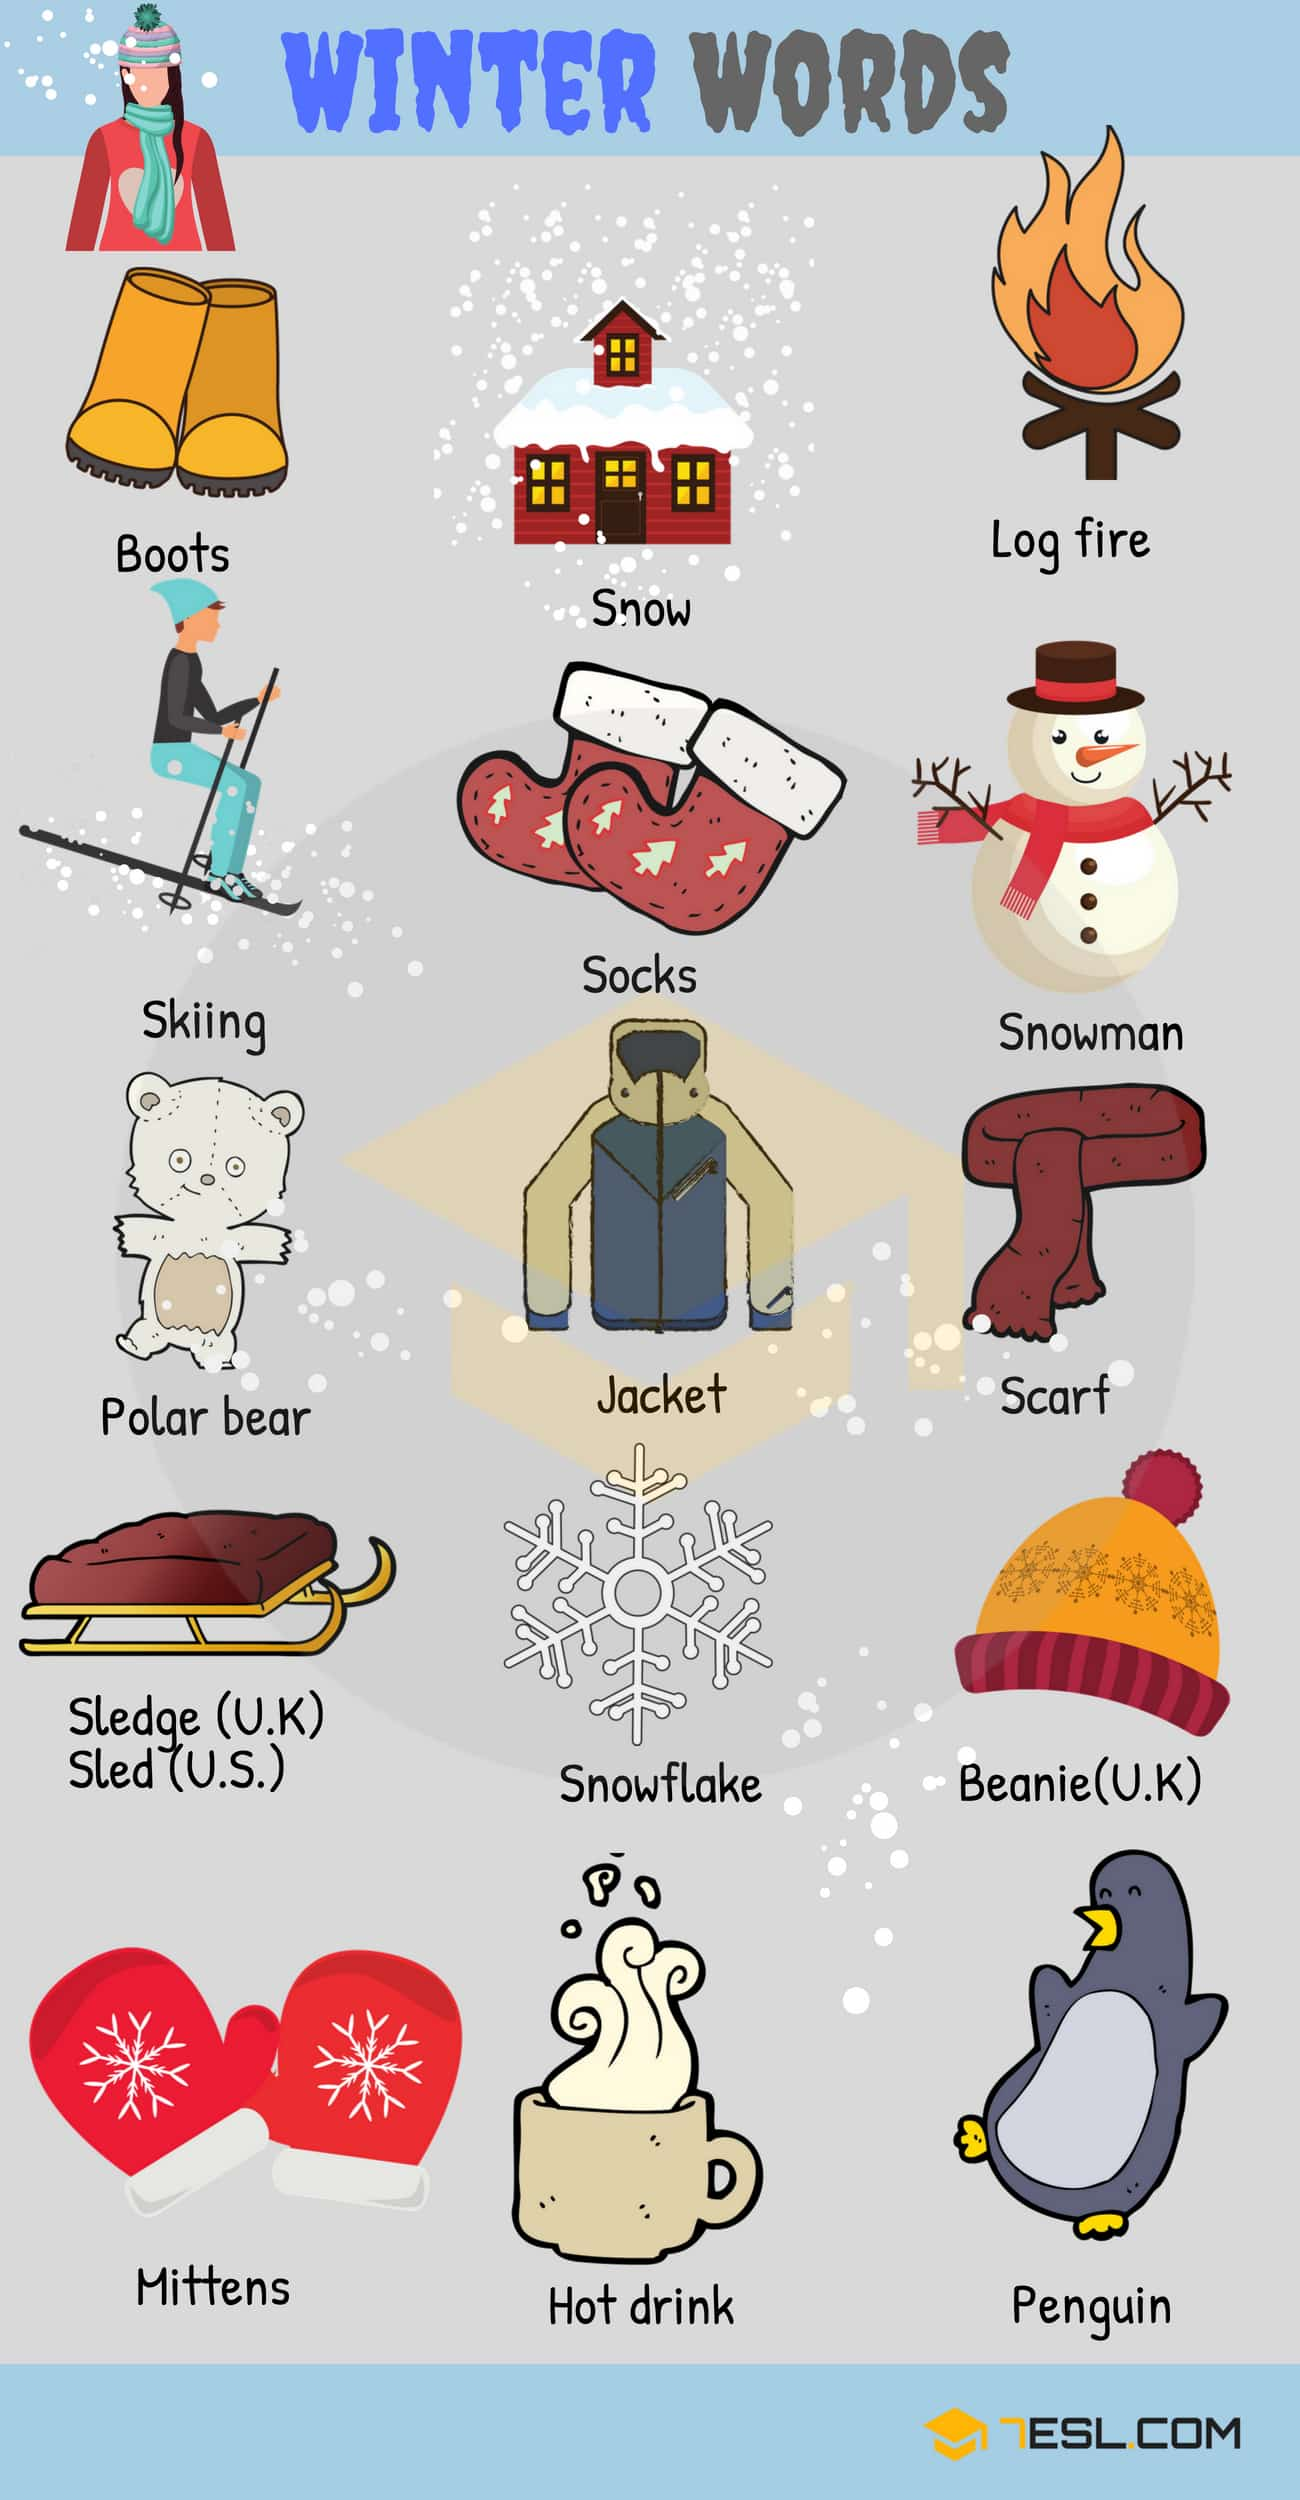 Winter Words: Useful Winter Vocabulary with Pictures